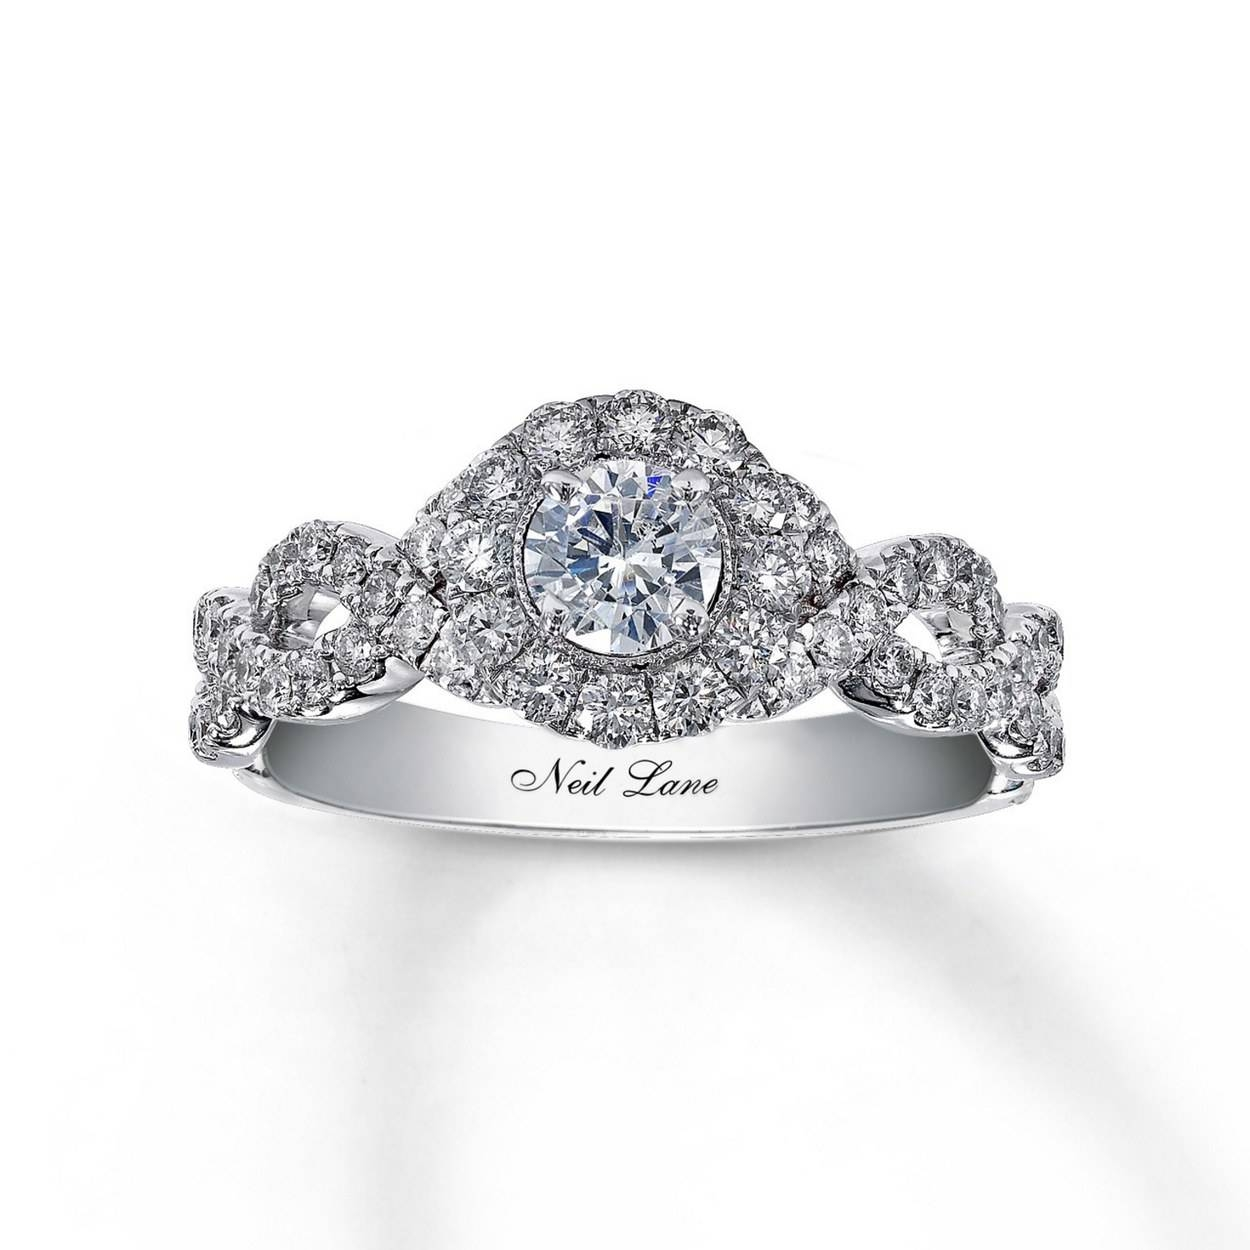 62 Diamond Engagement Rings Under $5,000 | Glamour With Regard To Intricate Engagement Rings (View 4 of 15)